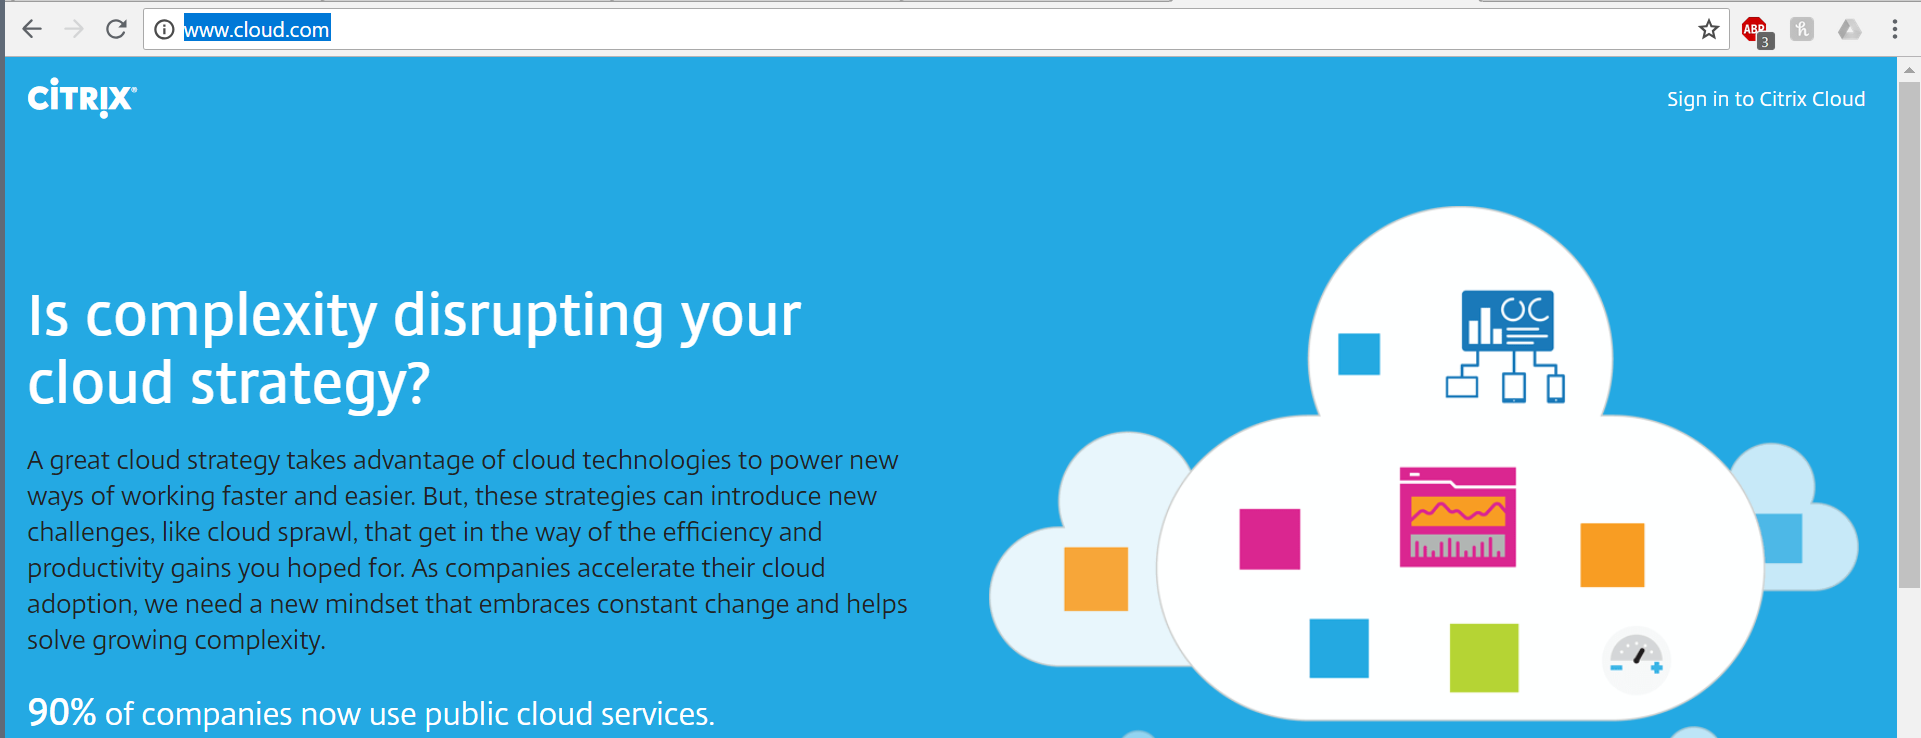 Citrix Cloud portal